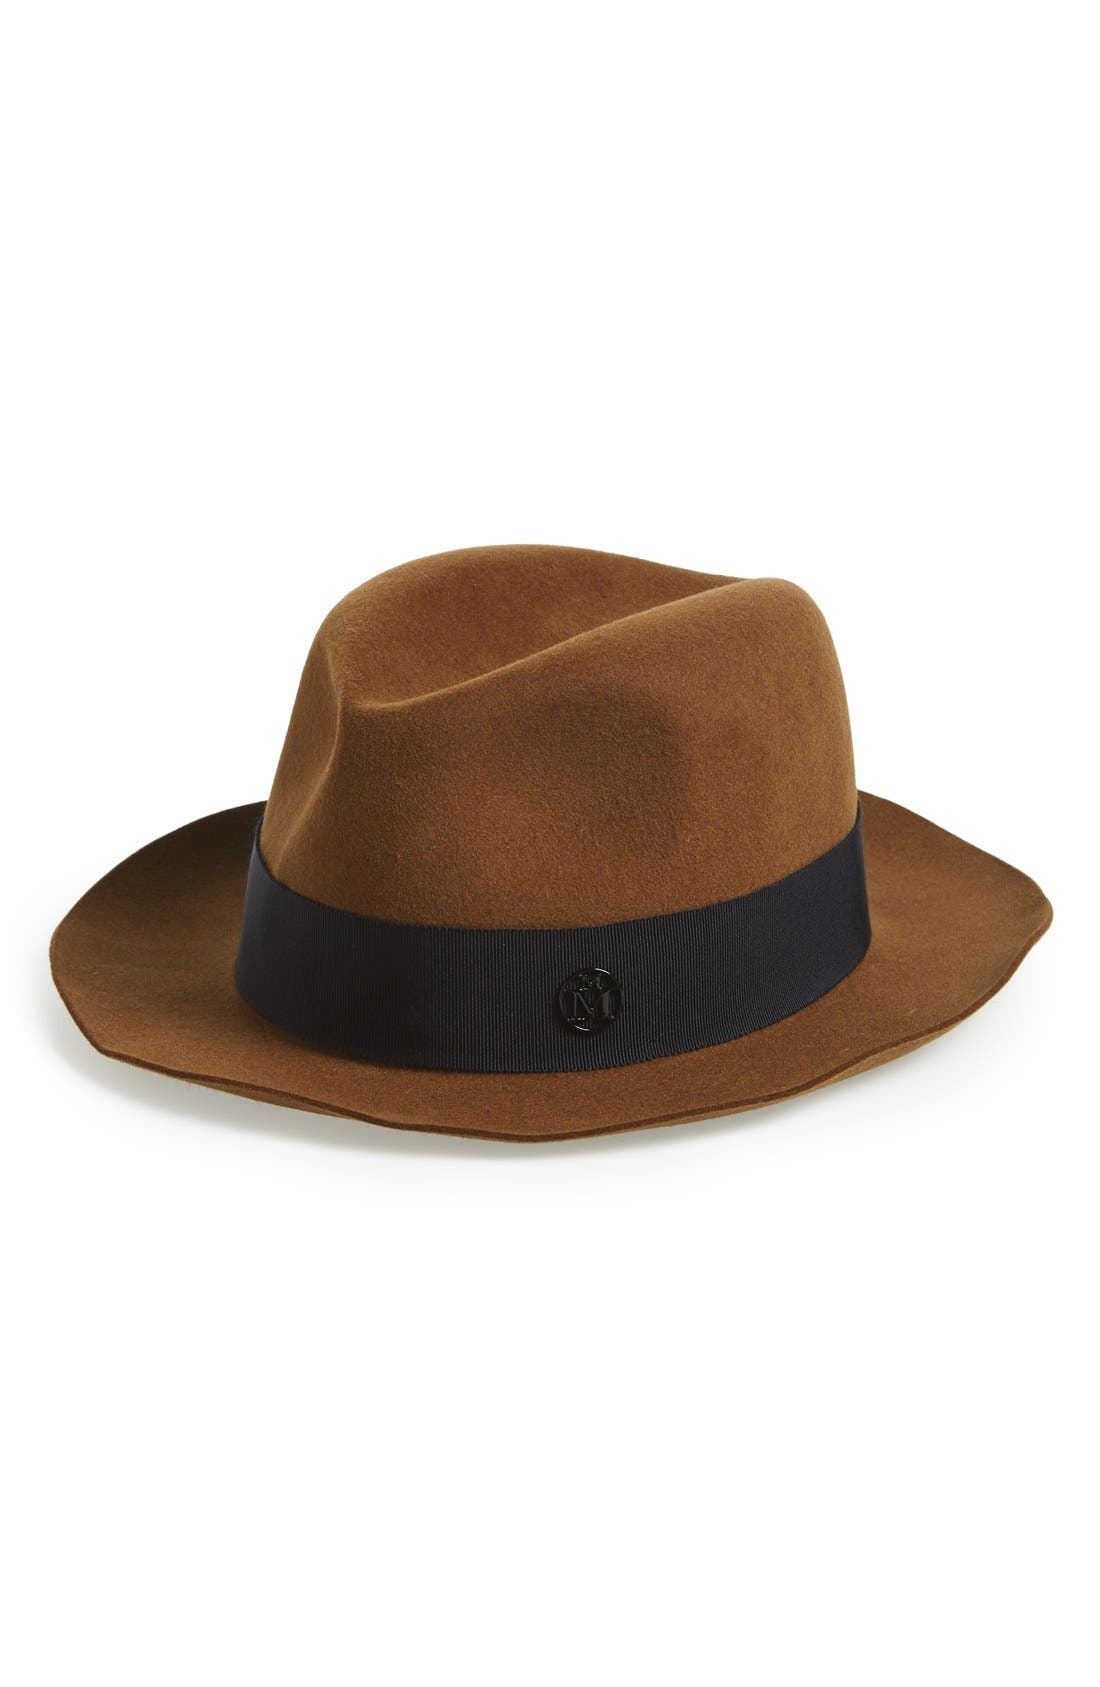 Joseph Fur Felt Hat,                             Main thumbnail 1, color,                             210